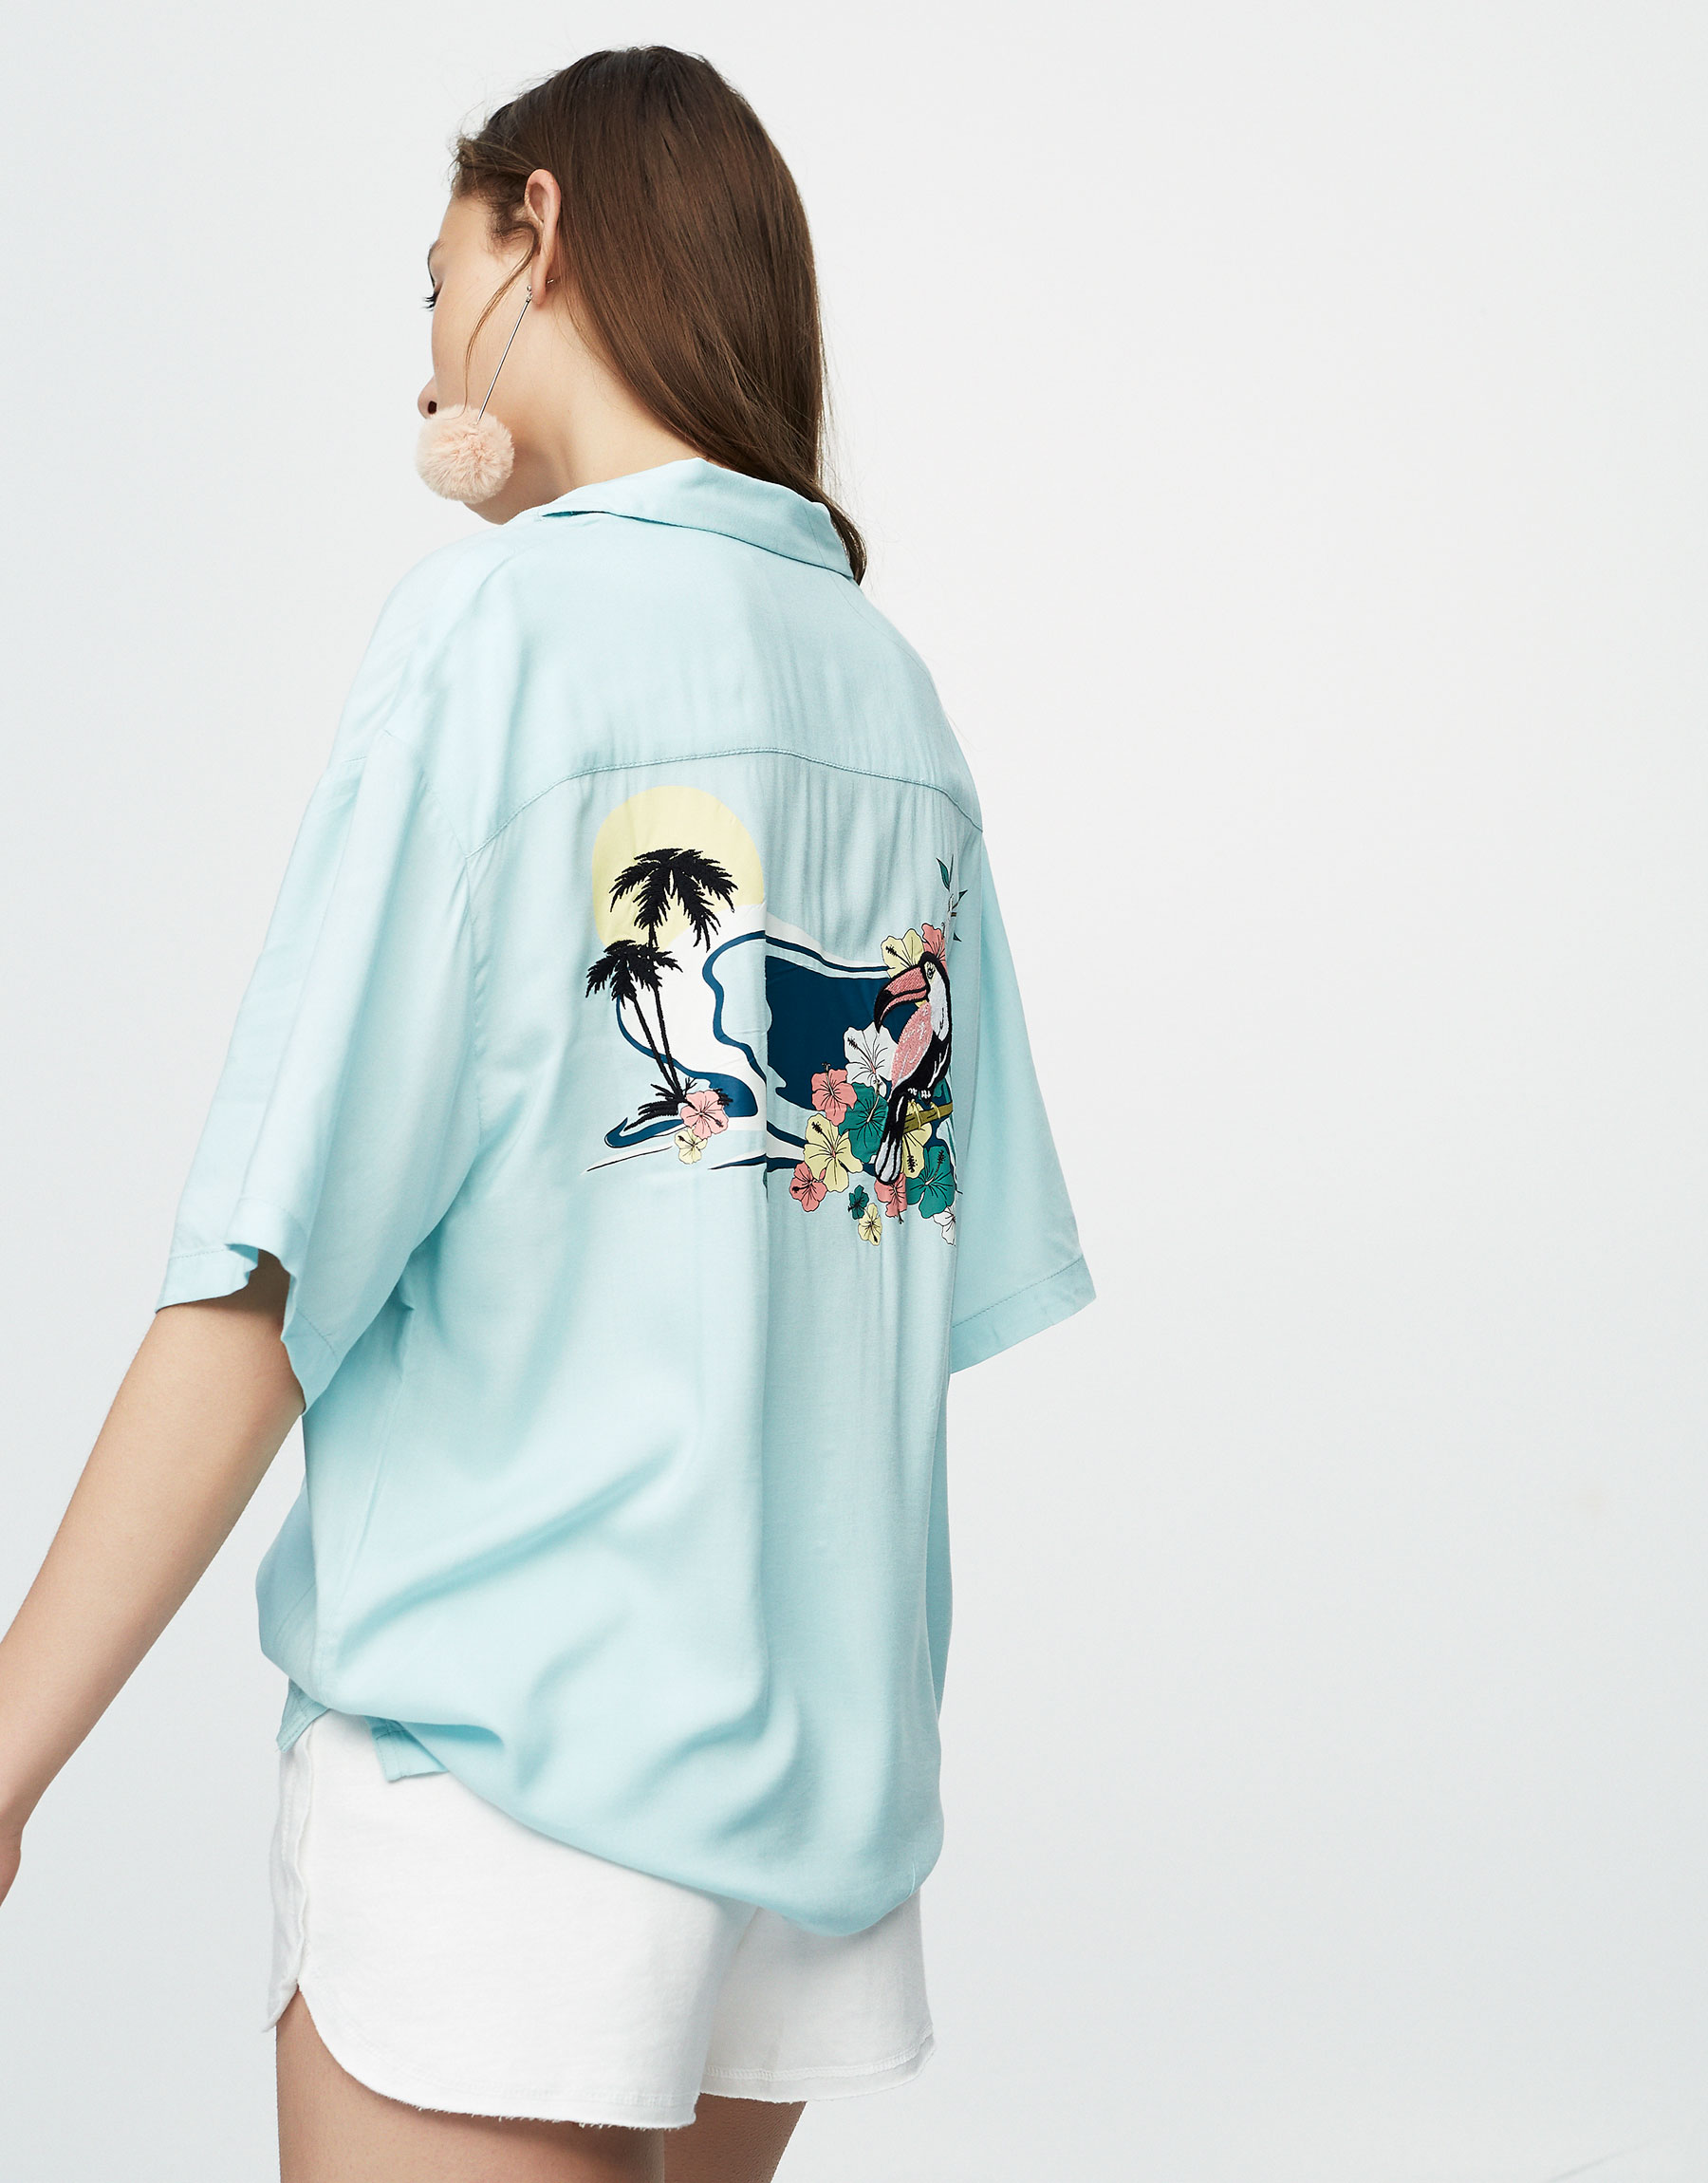 Short sleeve shirt with embroidered bird